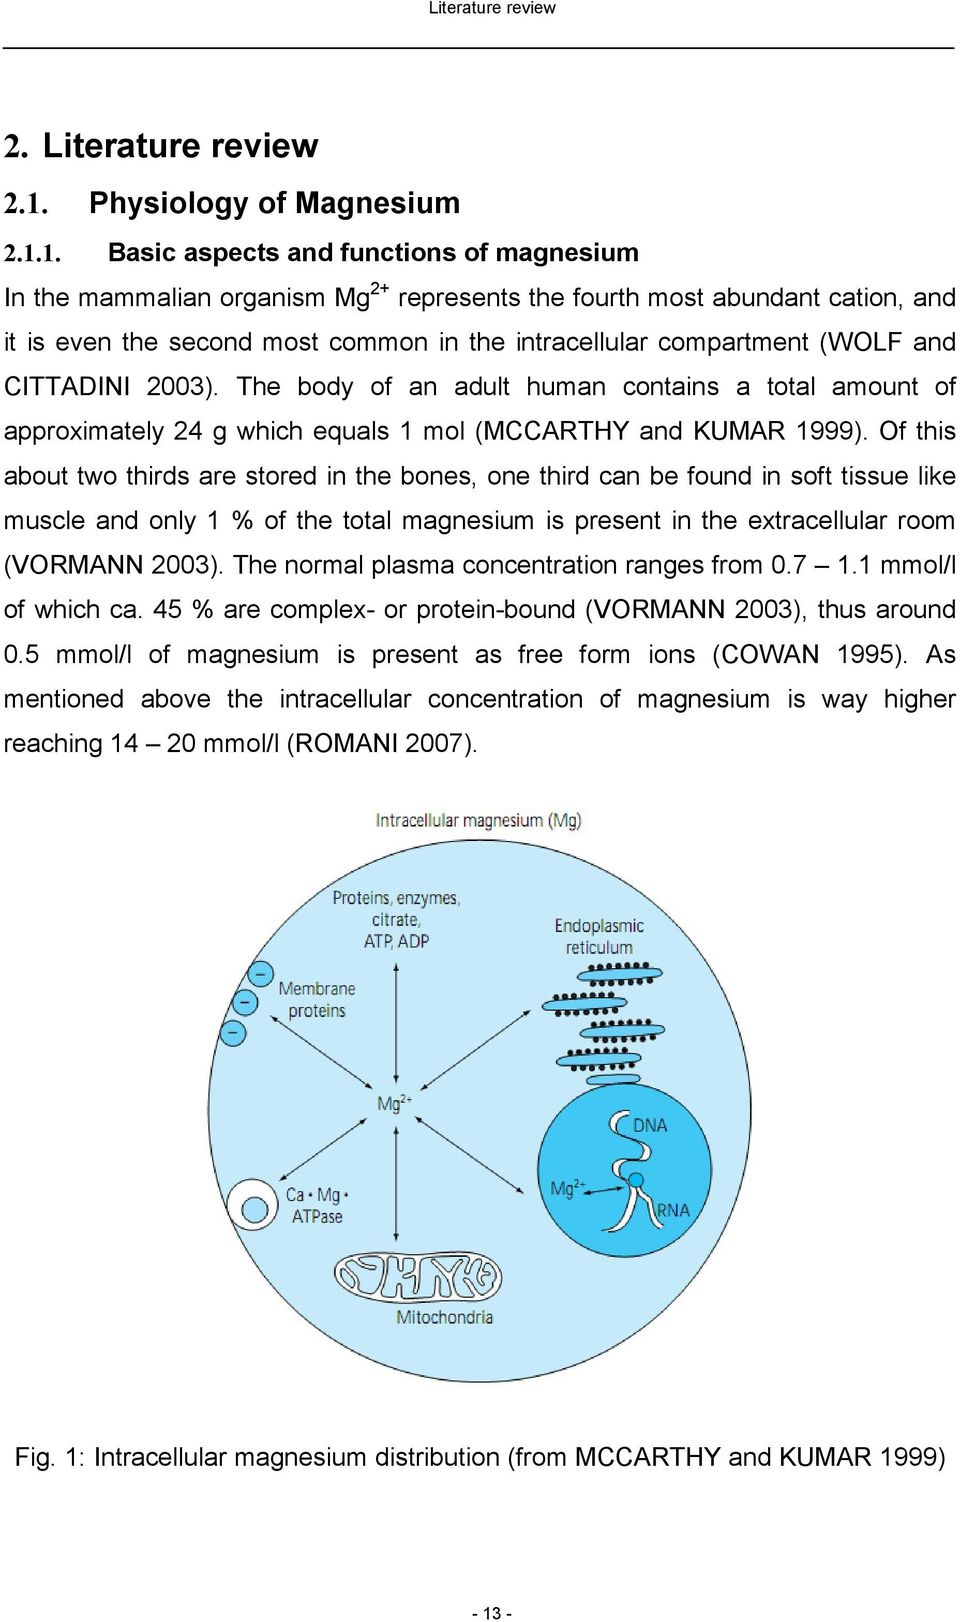 1. Basic aspects and functions of magnesium In the mammalian organism Mg 2+ represents the fourth most abundant cation, and it is even the second most common in the intracellular compartment (WOLF